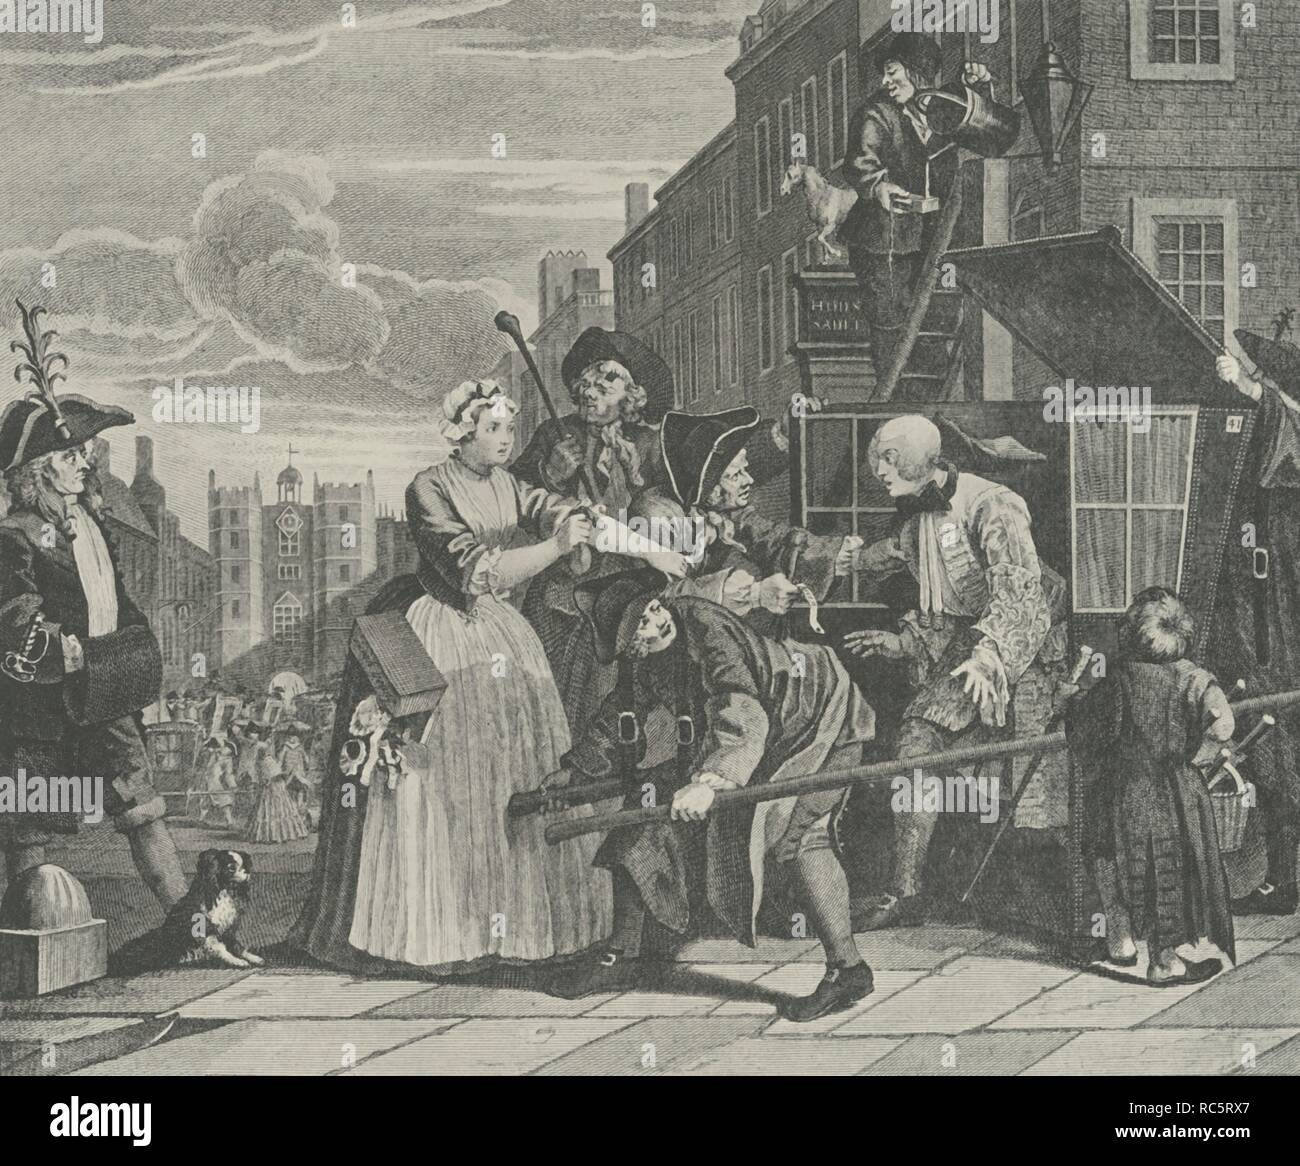 """'St. James's Street', 18th century, (1925). Engraving after Plate 4 of William Hogarth's 'A Rake's Progress' of 1735, 'Arrested for Debt'. The rake, Tom Rakewell, is stopped as he alights from his sedan chair. On the left is a Bow Street officer. The scene is St James's Street, looking towards St James's Palace from the King Street junction in London. From """"London in the Eighteenth Century"""", by Sir Walter Besant. [A. & C. Black, Ltd., London, 1925] - Stock Image"""